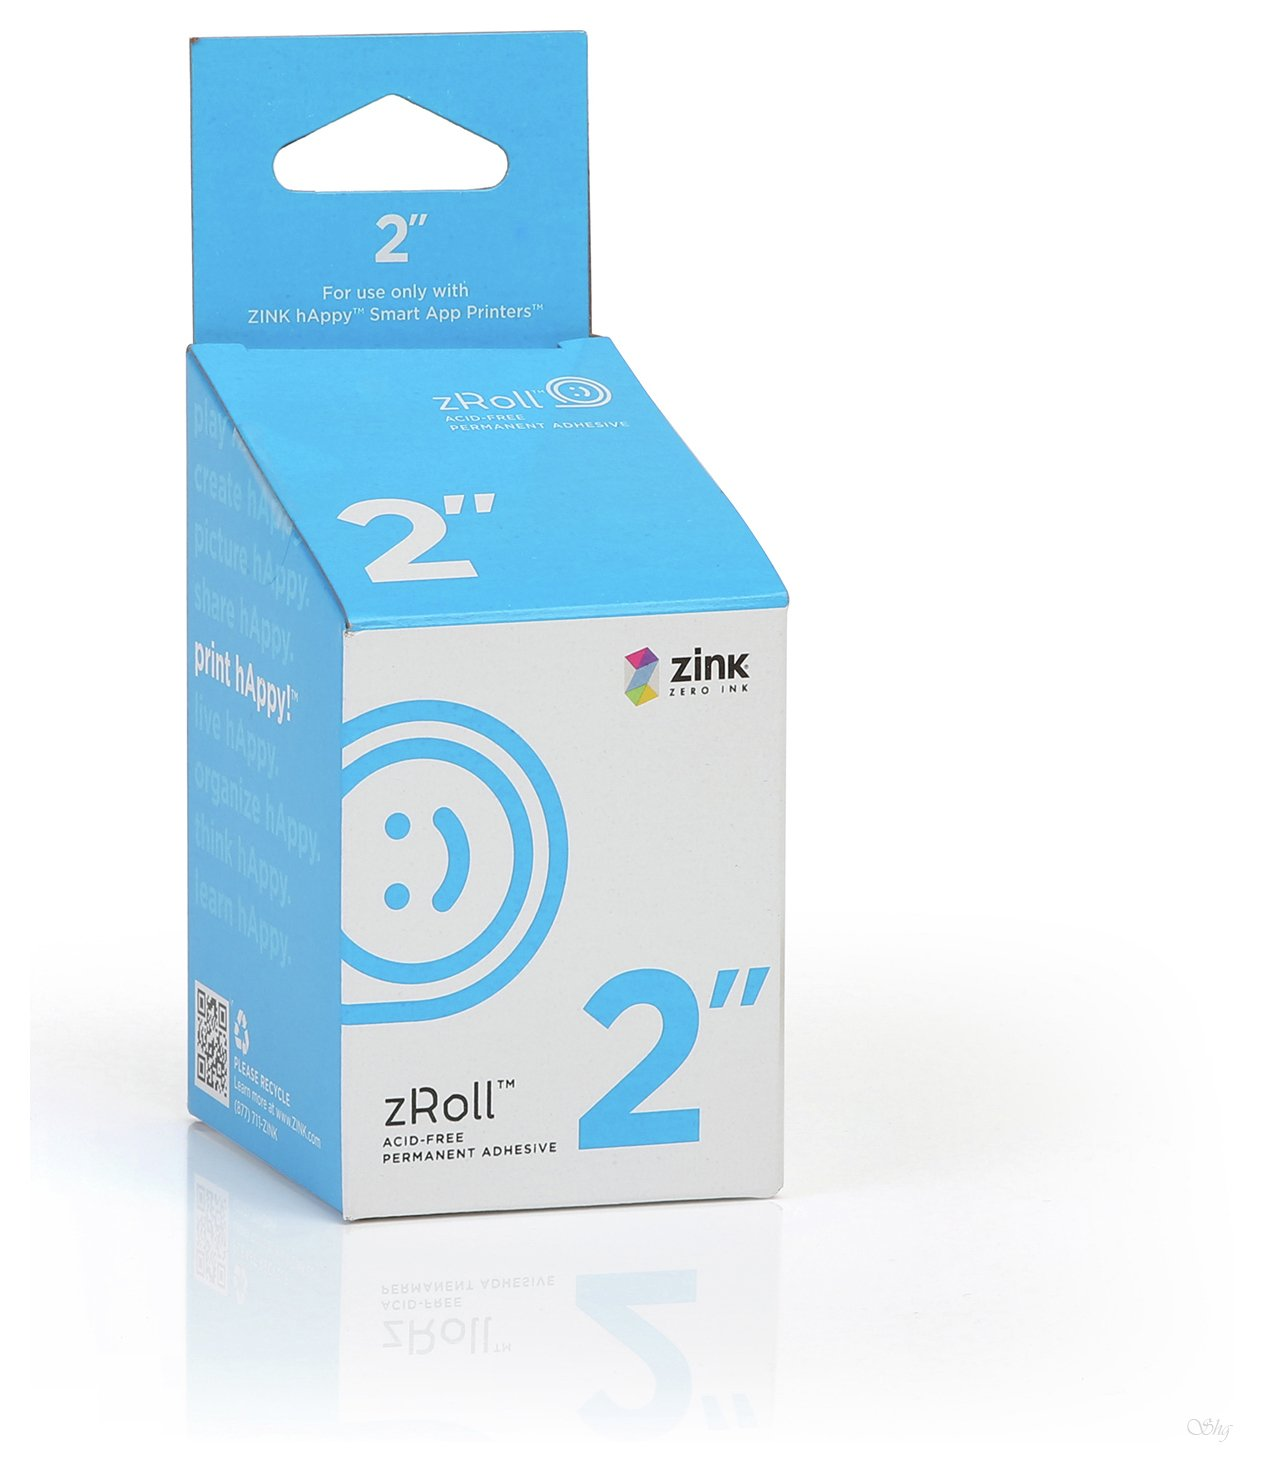 ZINK hAppy - 2 Inch zRoll